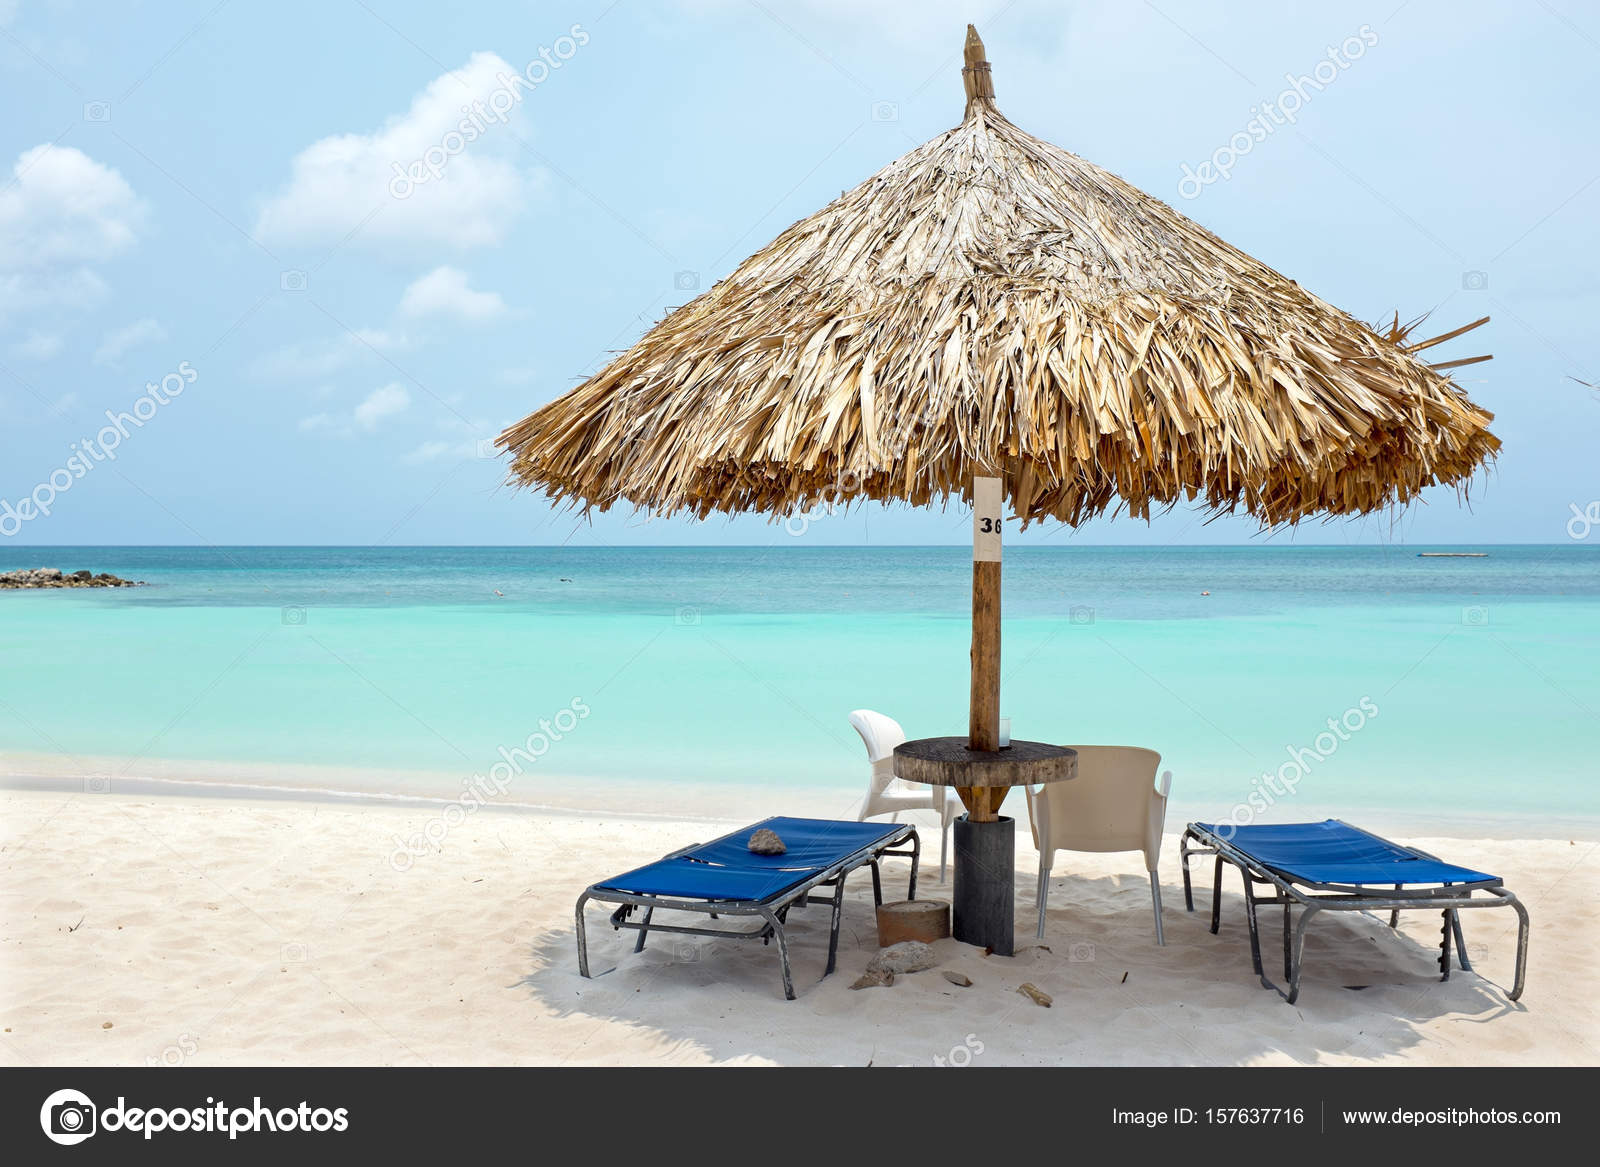 Beach umbrella and chair Transparent Beach Umbrella And Beach Chairs On Palm Beach At Aruba Island In The Caribbean Sea Photo By Nilaya Bed Bath Beyond Beach Umbrella And Beach Chairs On Palm Beach At Aruba Island In